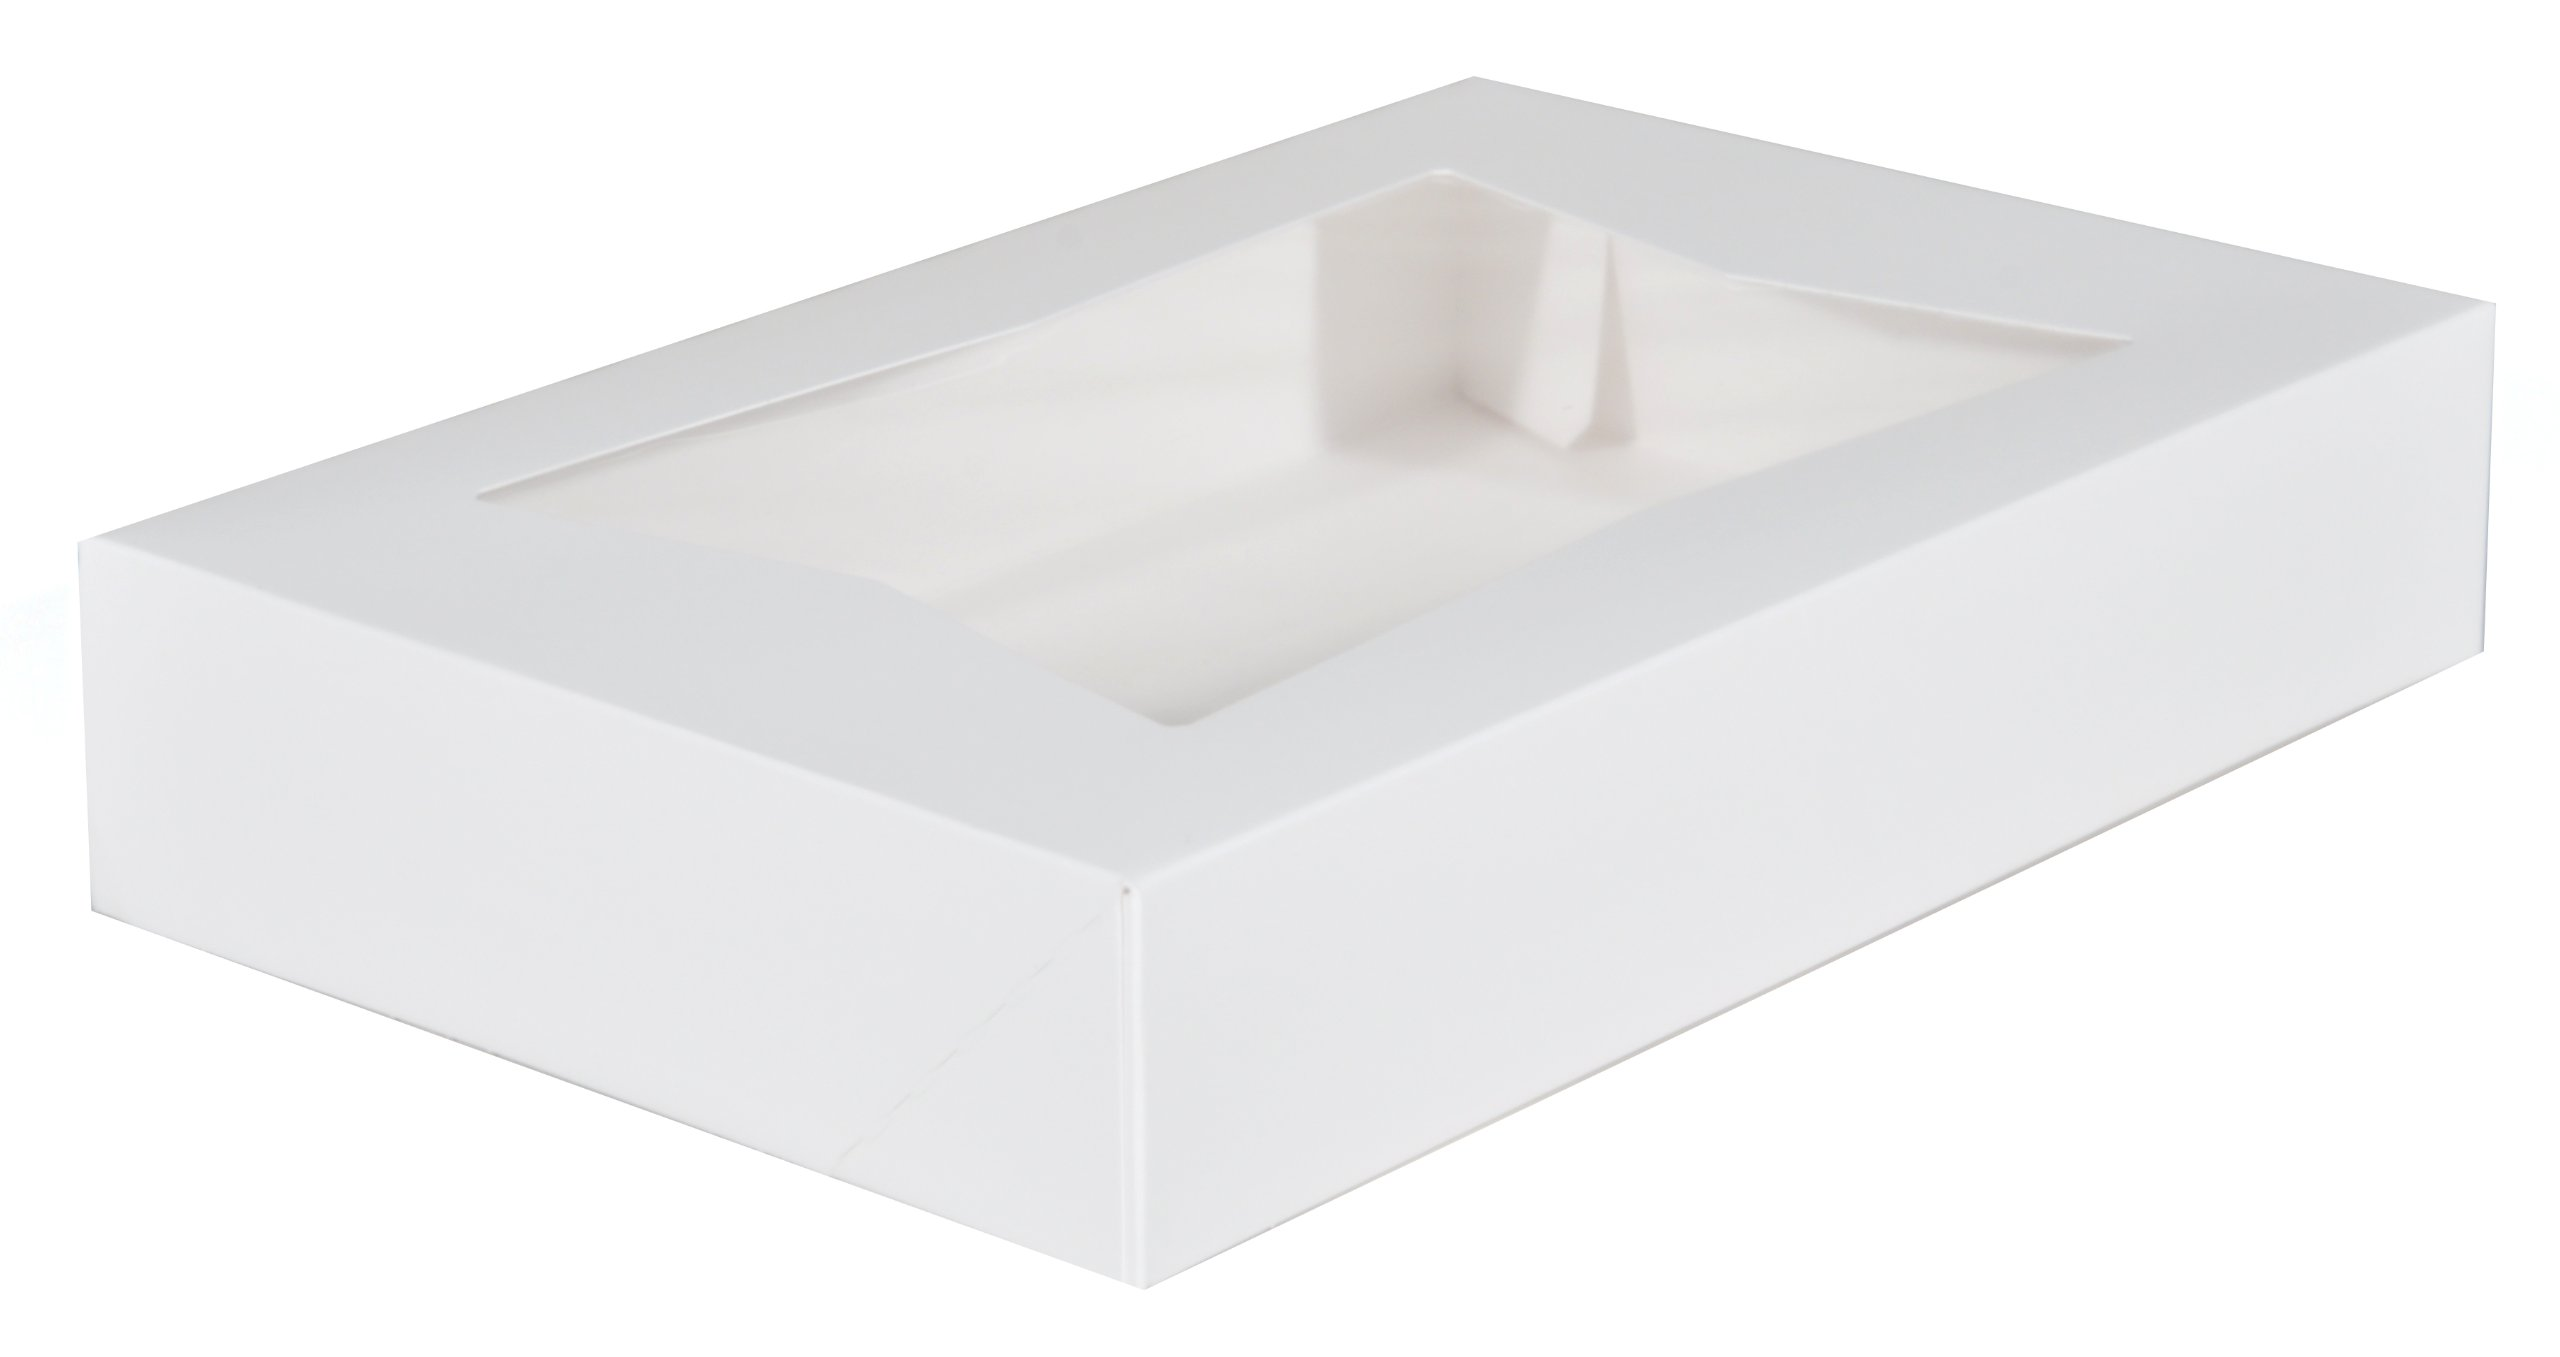 Southern Champion Tray 24343 Paperboard White Window Bakery Box, 12'' Length x 8'' Width x 2-1/4'' Height (Case of 200)